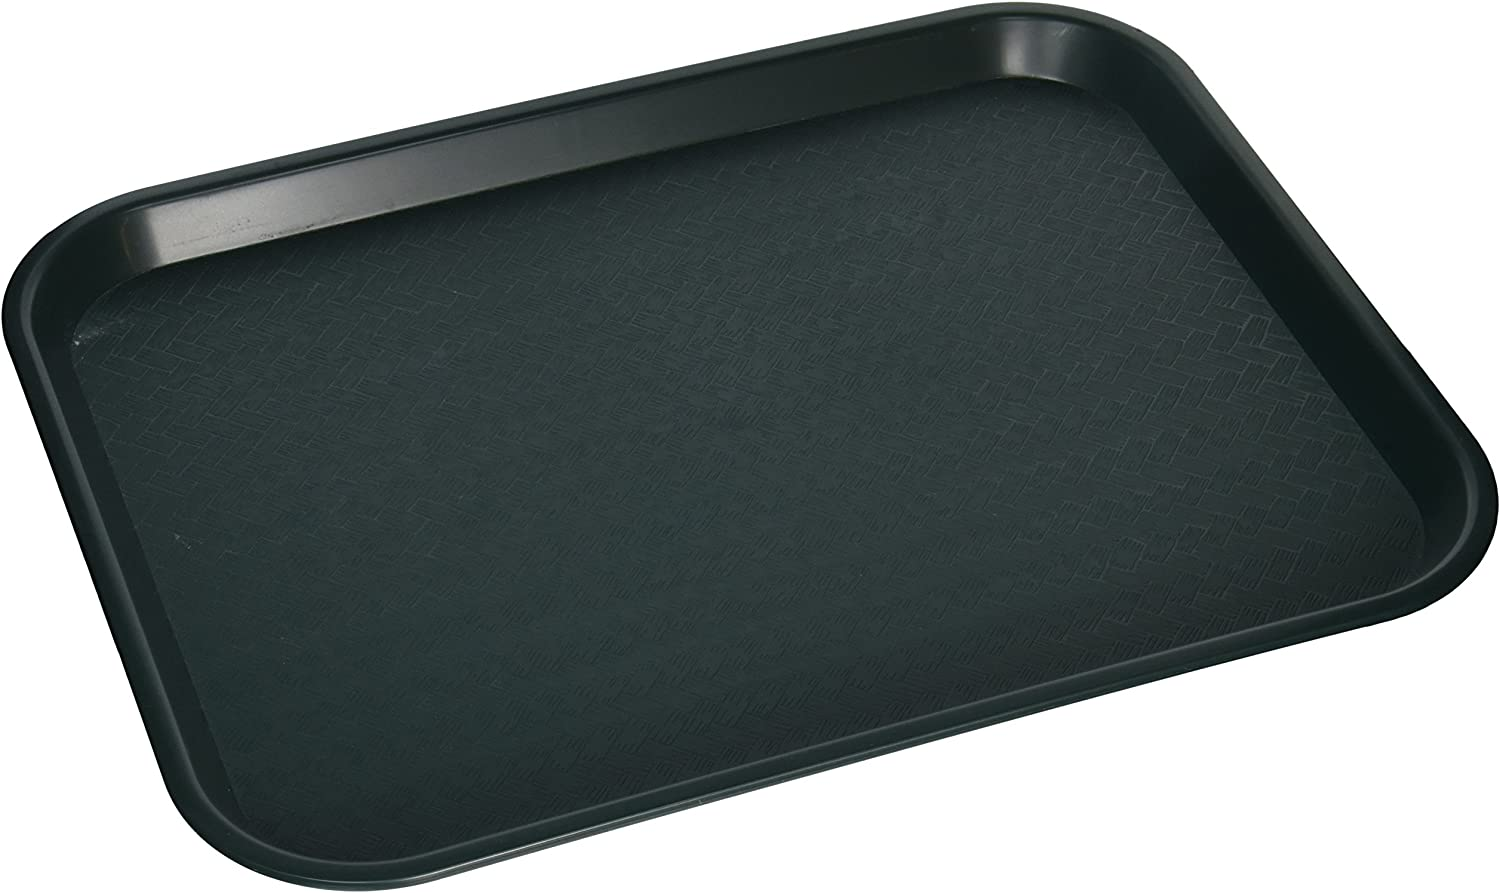 Winco Fast Food Tray, 14 by 18-Inch, Green